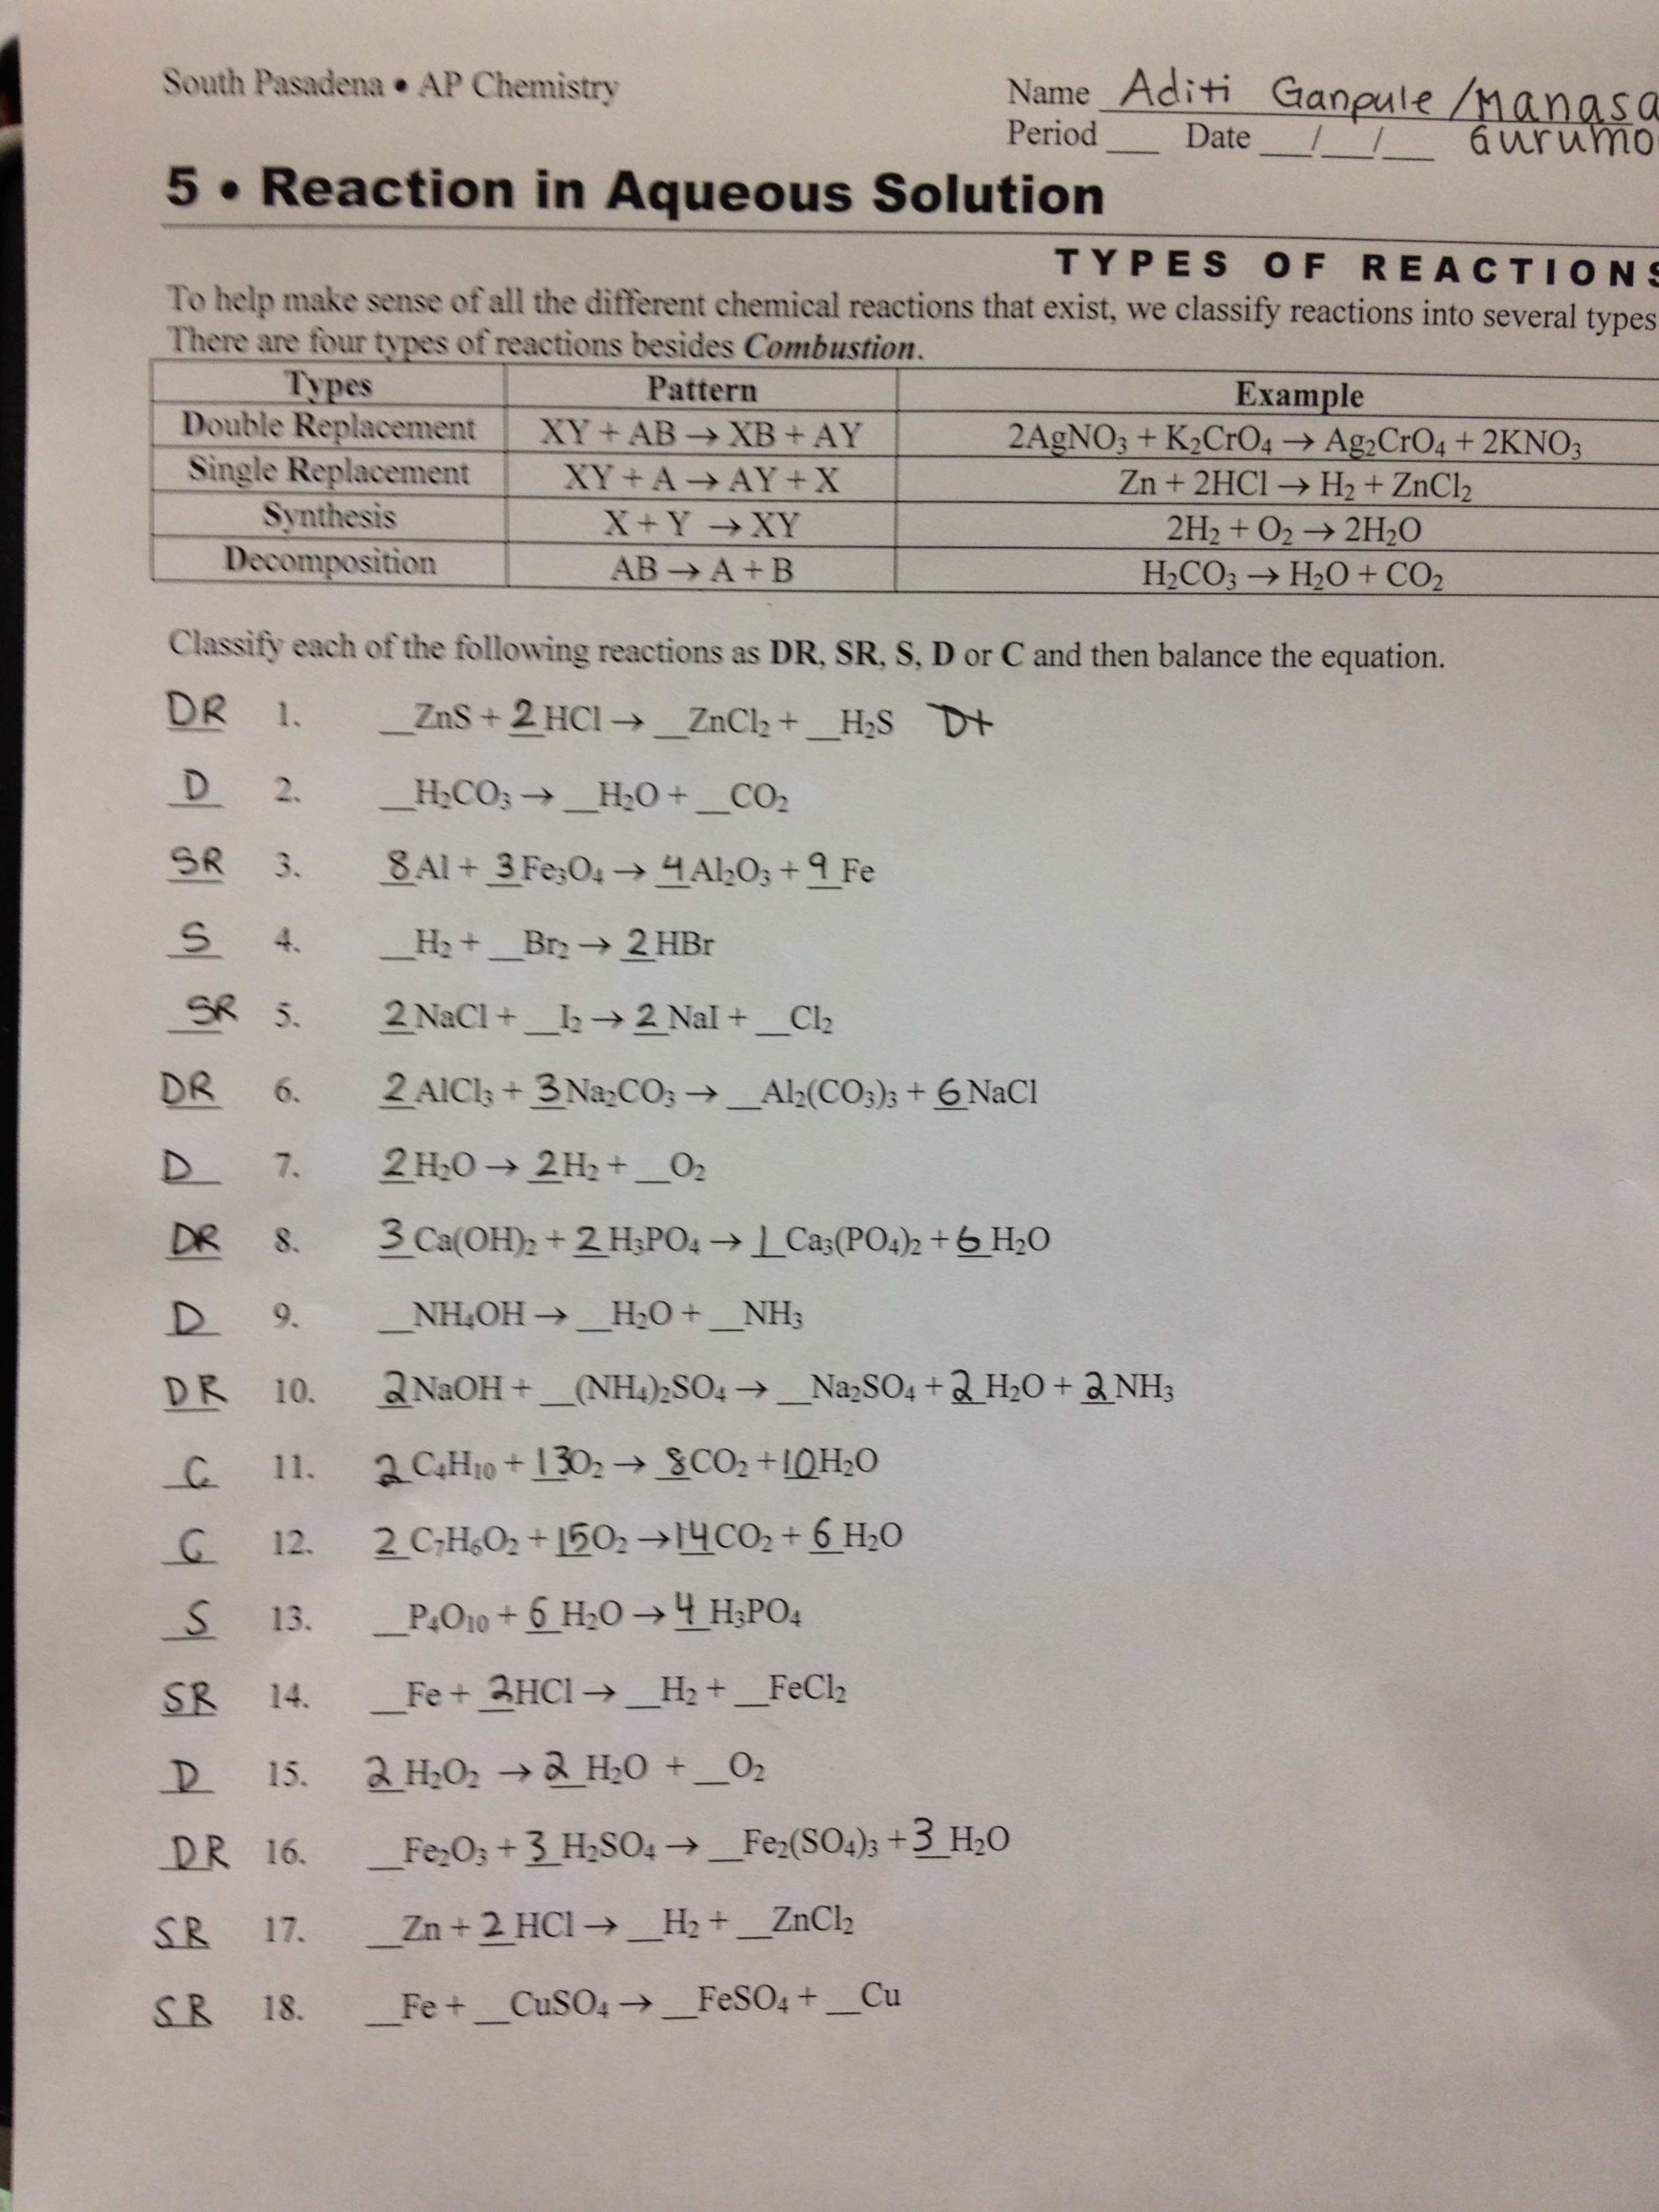 Unit A- Chapters 1-4: Matter, Measurement, Stoichiometry and Reaction  Prediction (Content in Gray has been phased out)